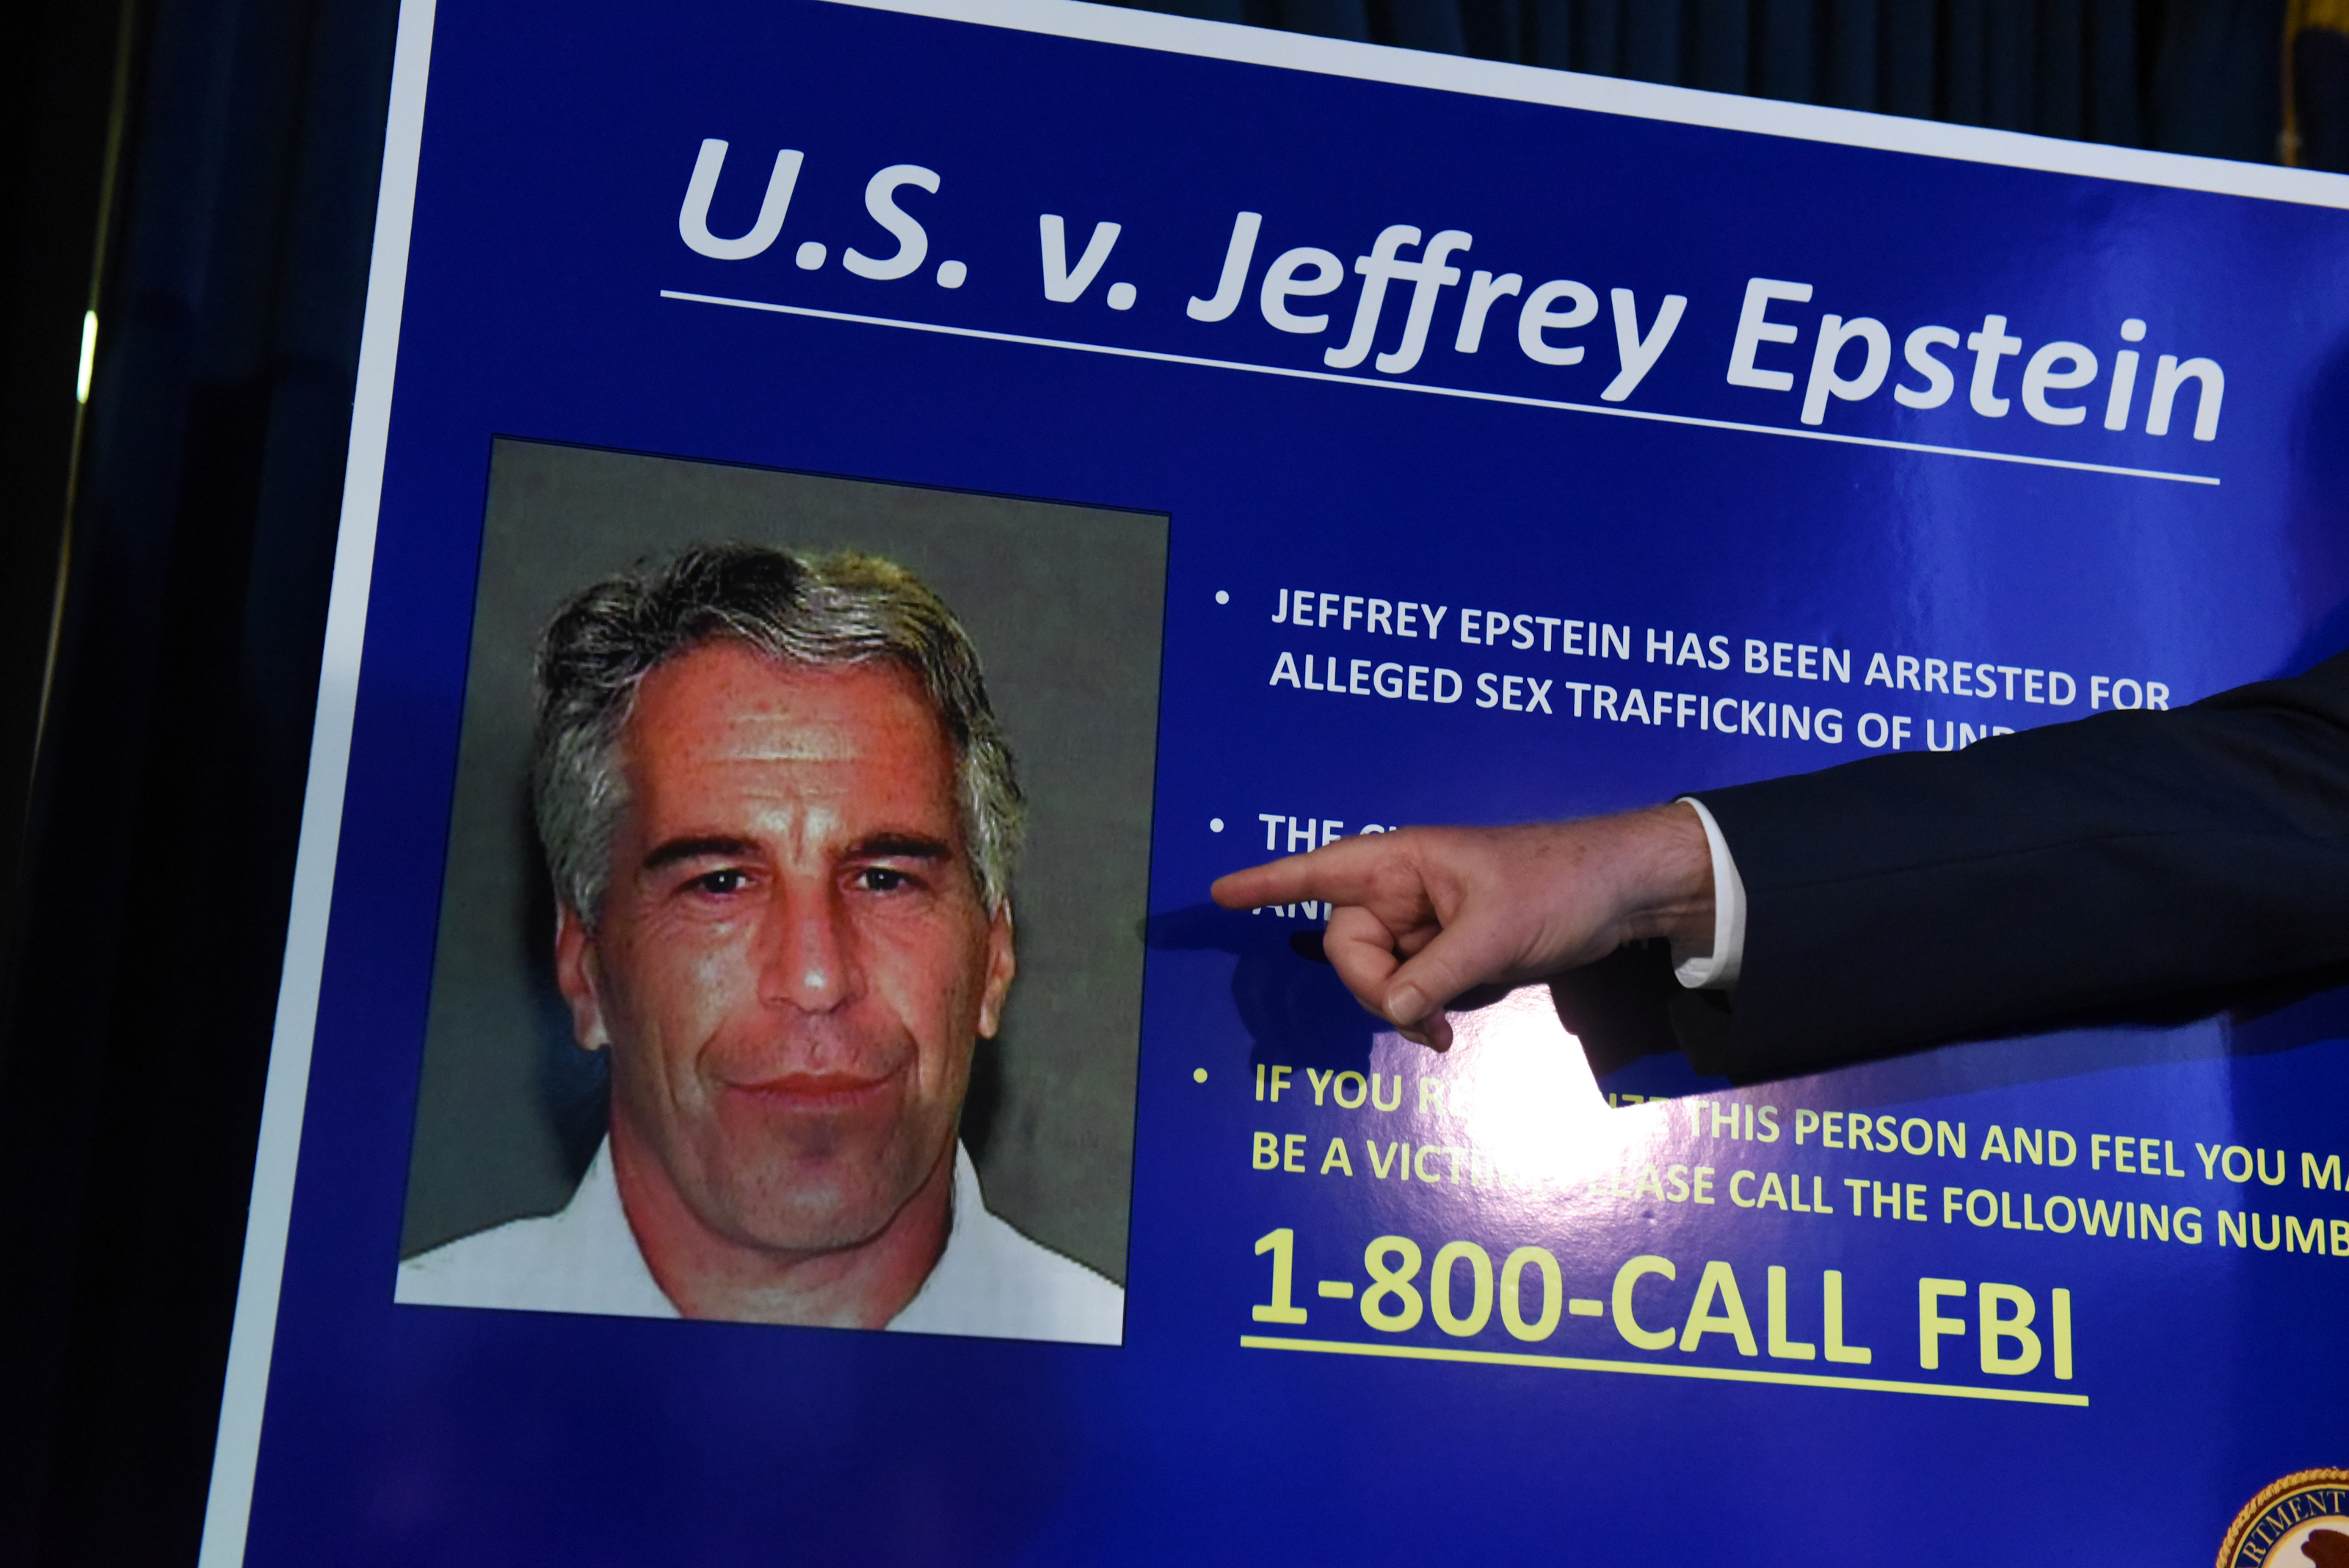 A disembodied arm points to a picture of Jeffrey Epstein during an announcement of charges being brought against him.